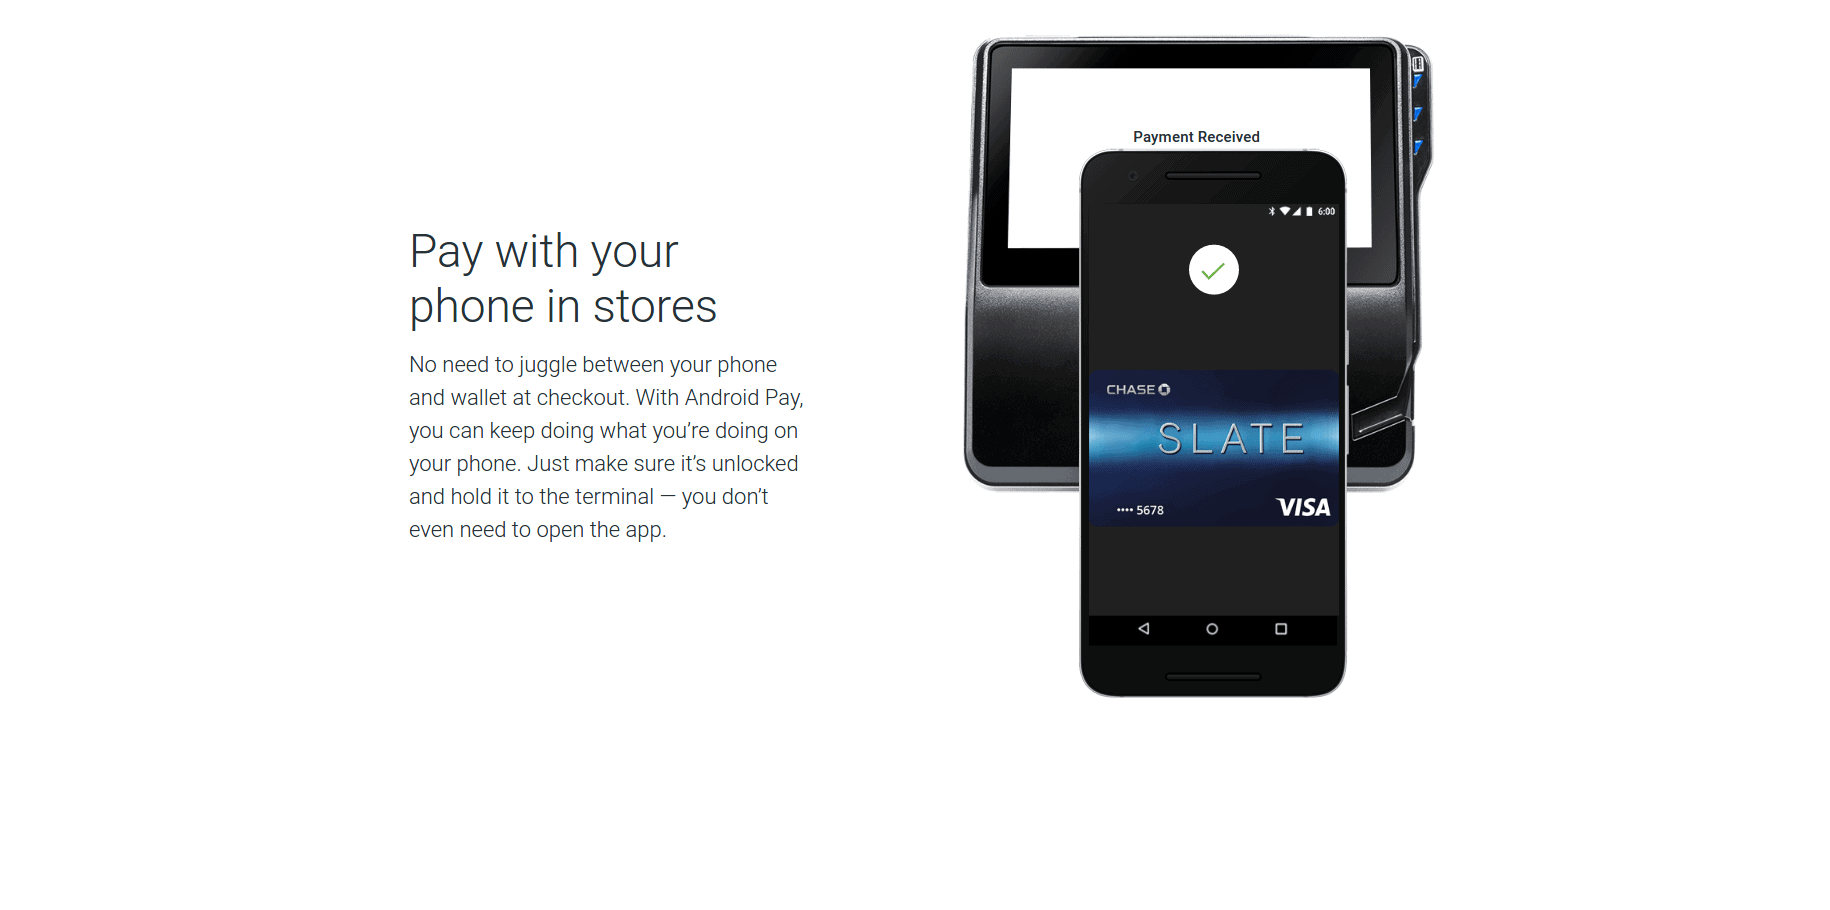 Android Pay new design screenshot 3